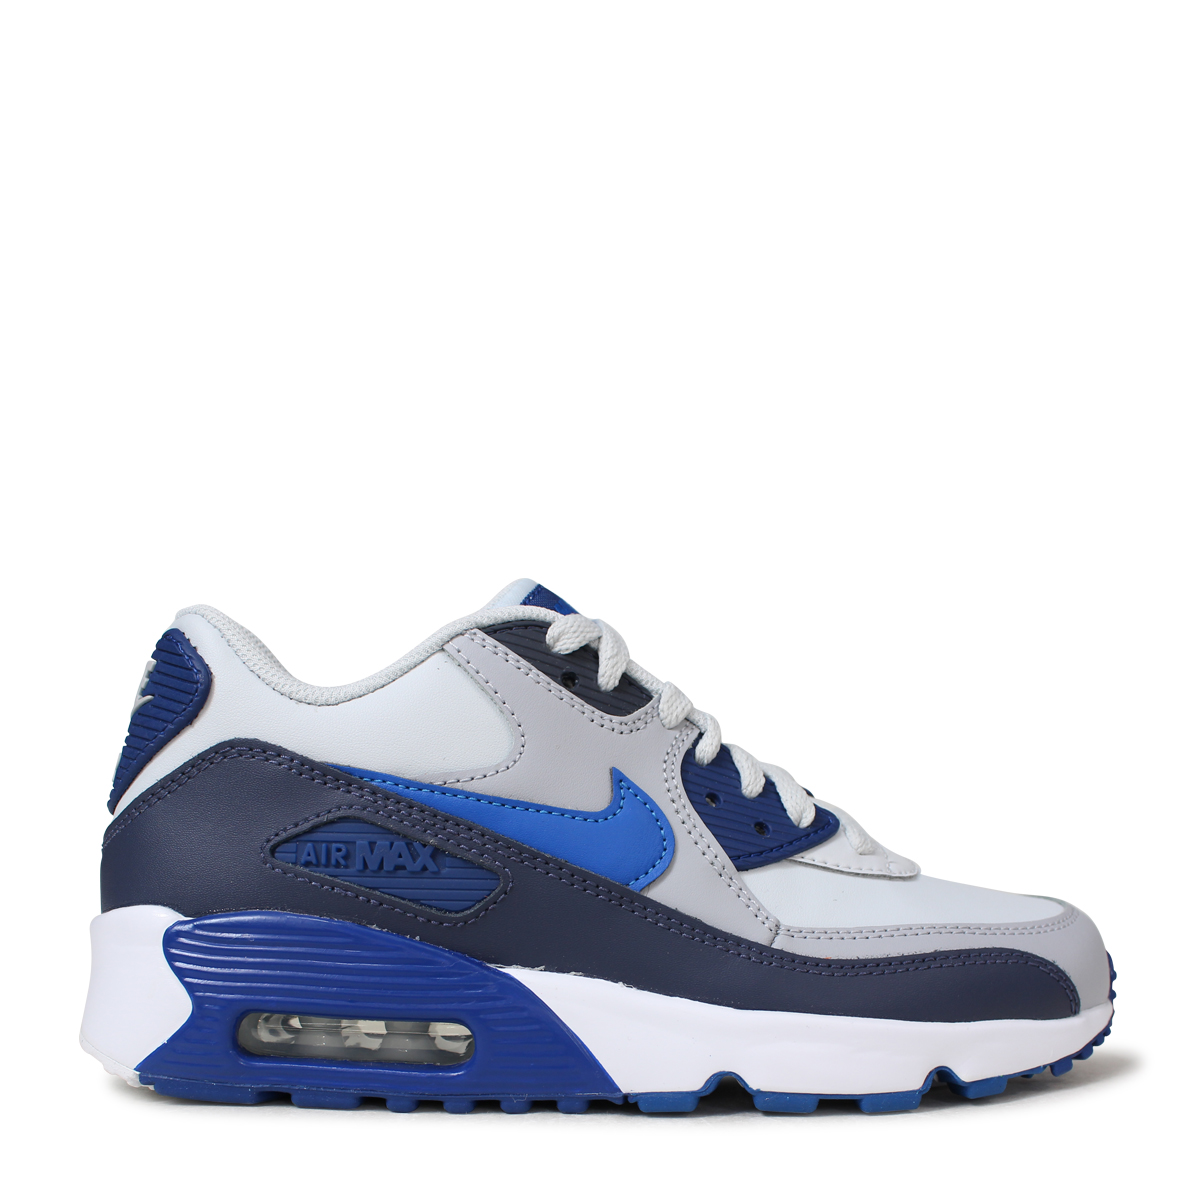 NIKE AIR MAX 90 LEATHER GS Kie Ney AMAX 90 Lady's sneakers 833,412 407 blue [512 Shinnyu load] [185]